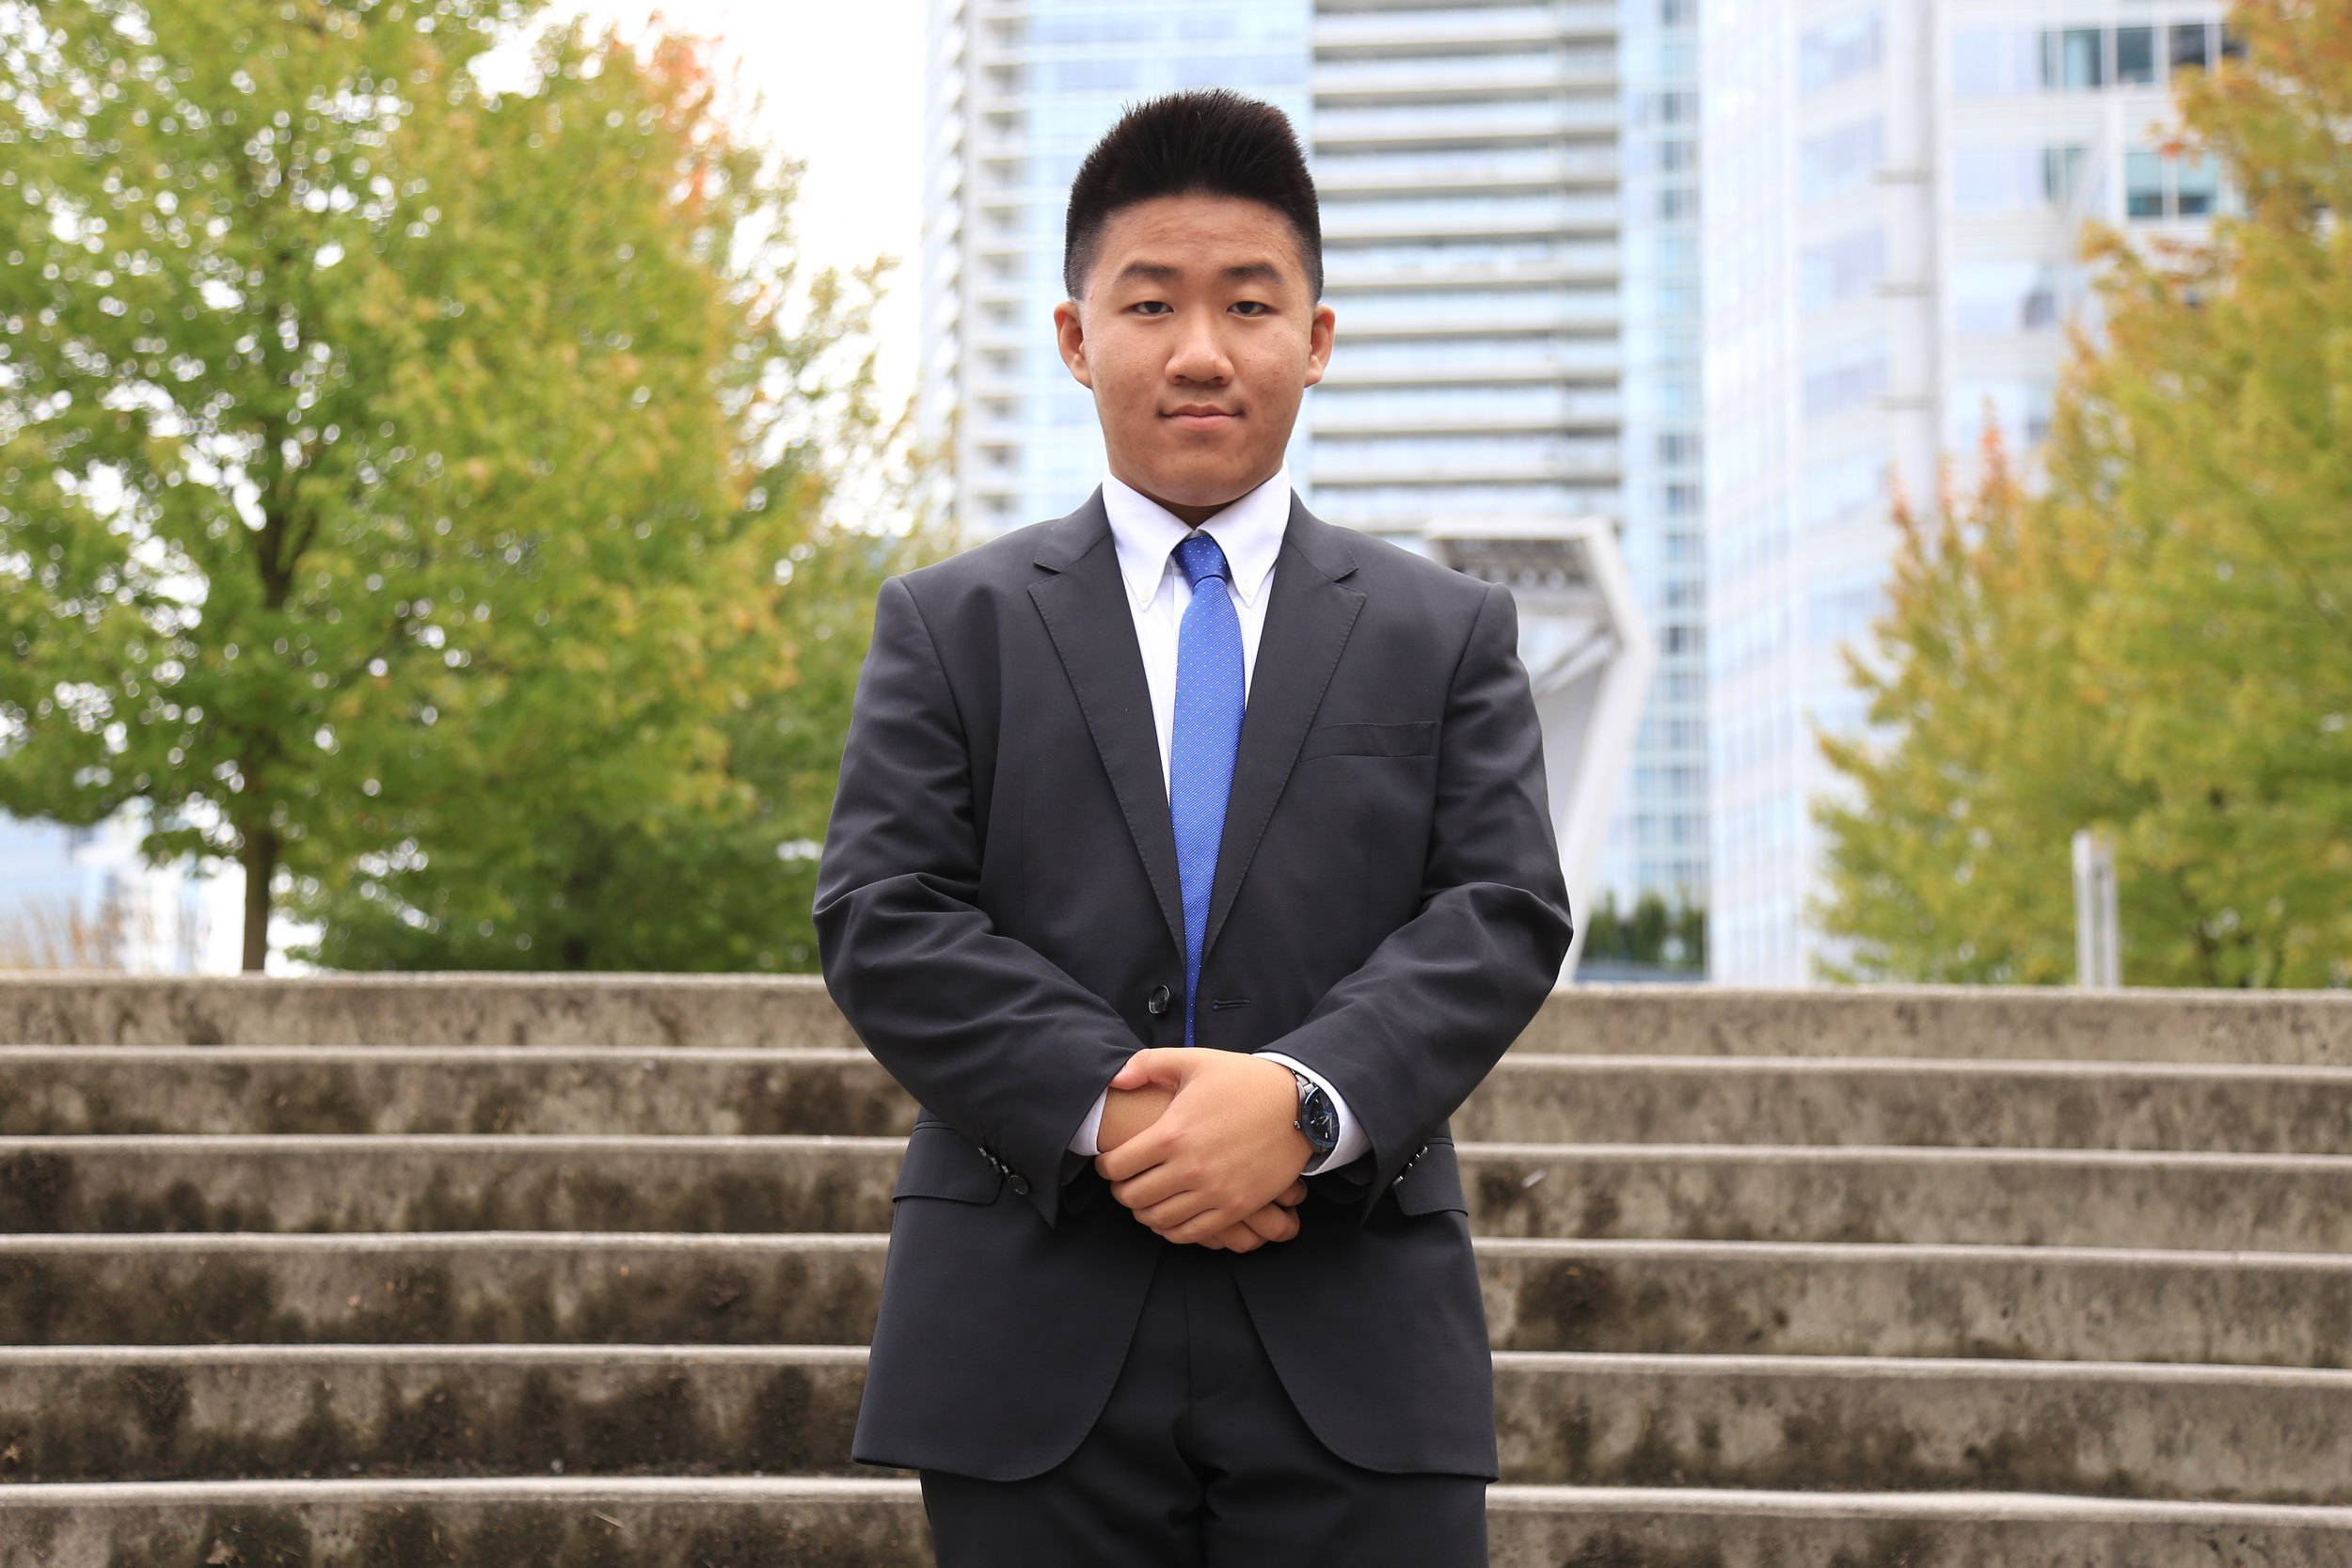 Event Management Director - Christopher Yuen